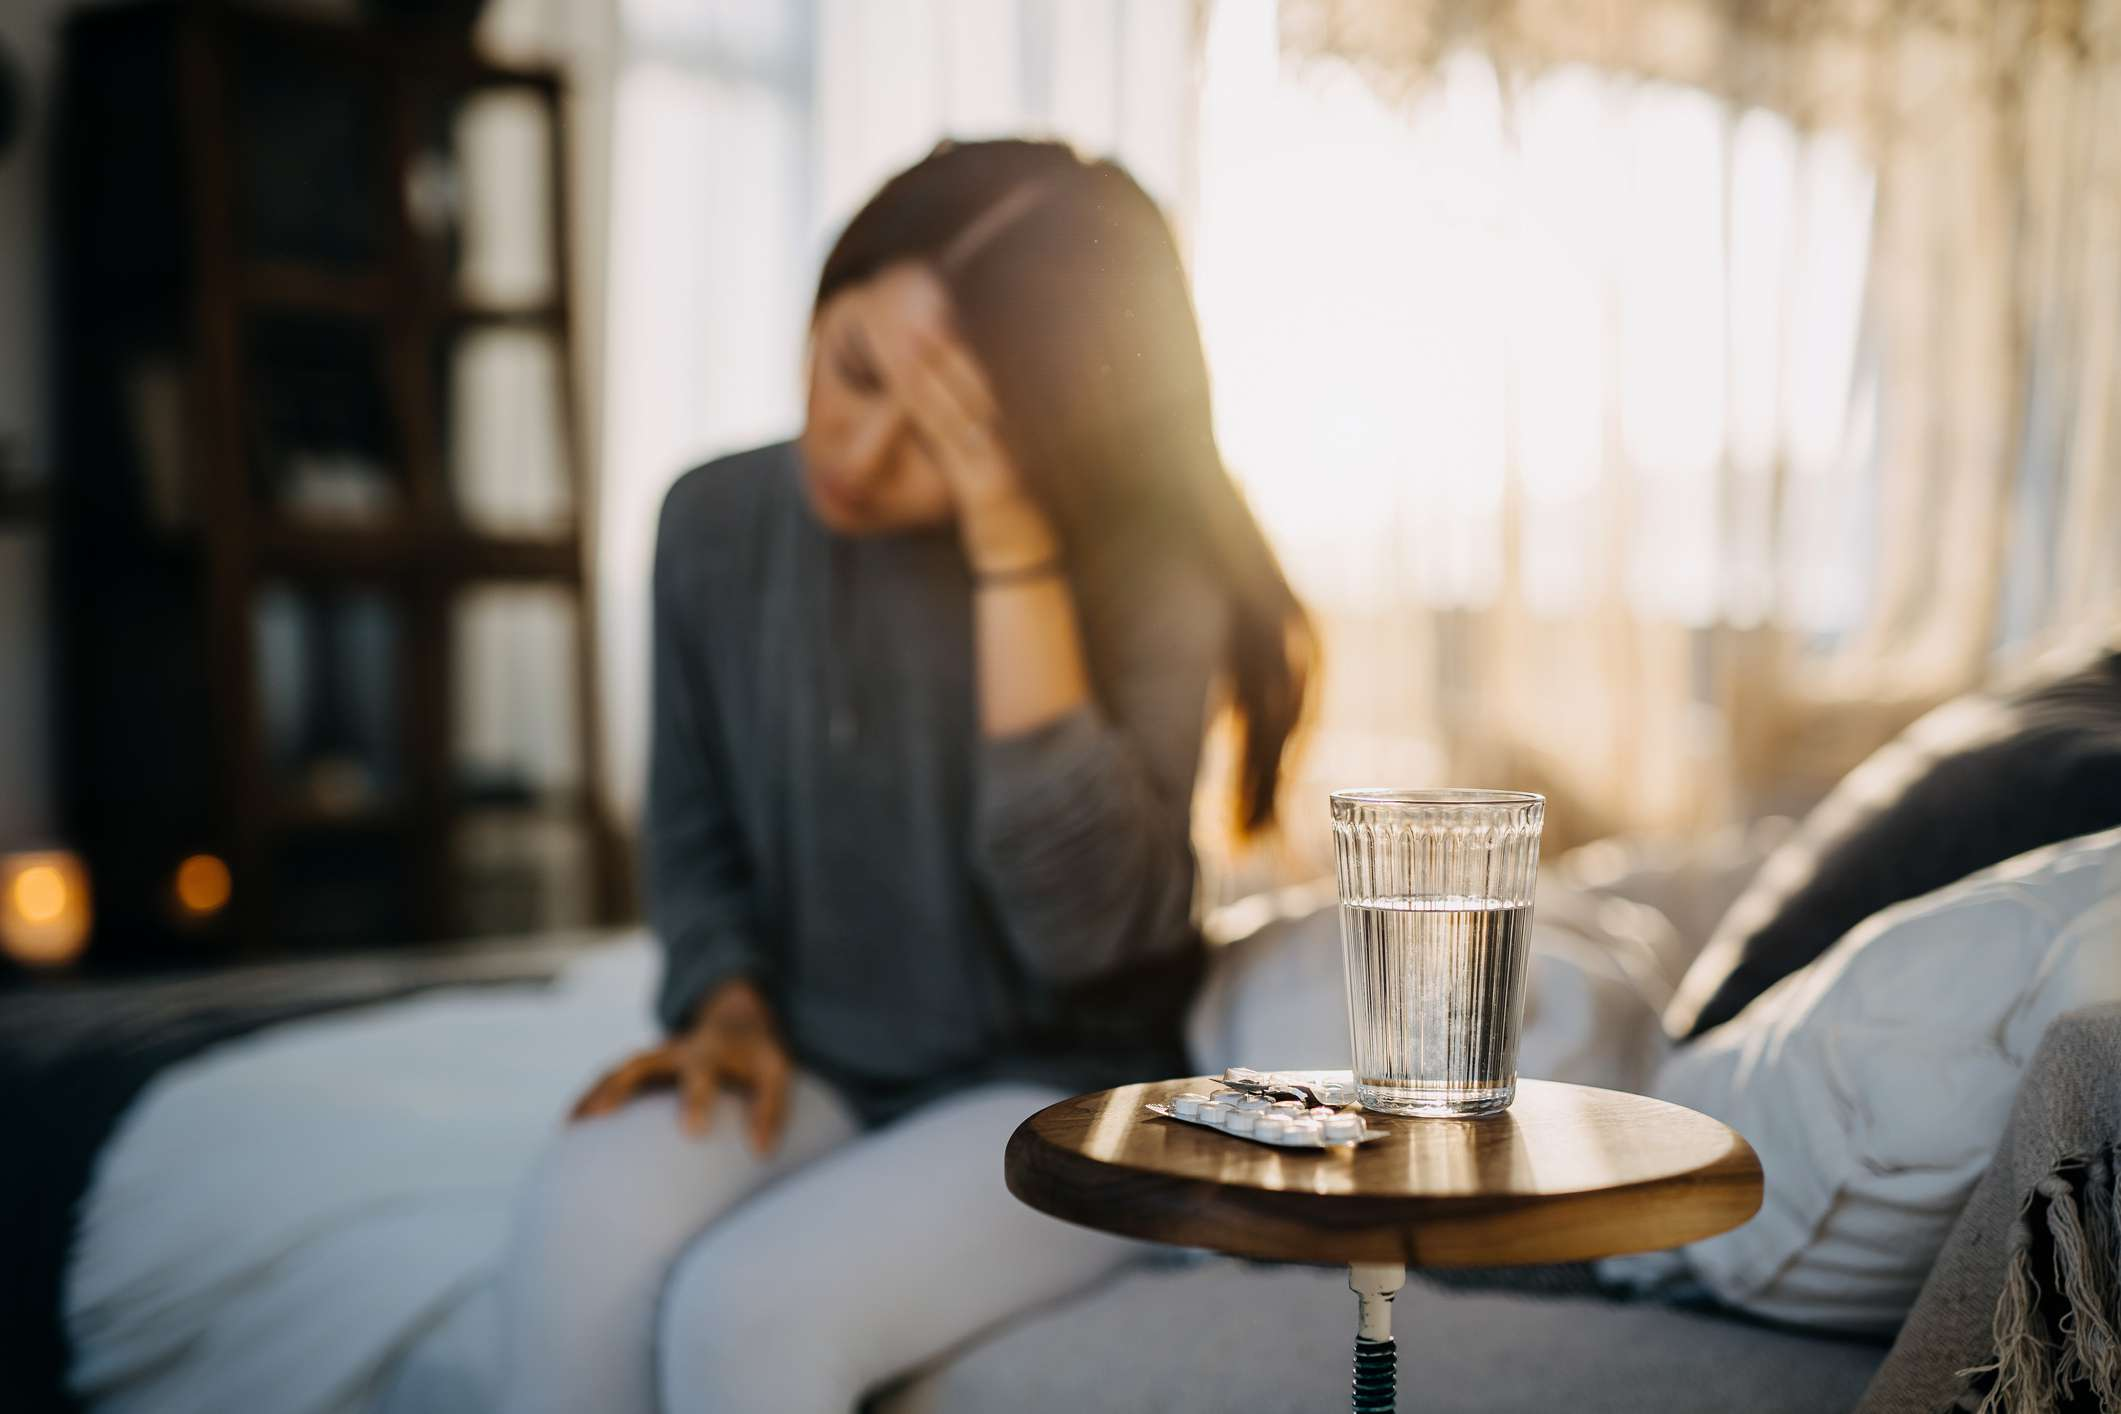 A young woman sits on the side of the bed, holding her head. A glass of water and medication sit on a table.